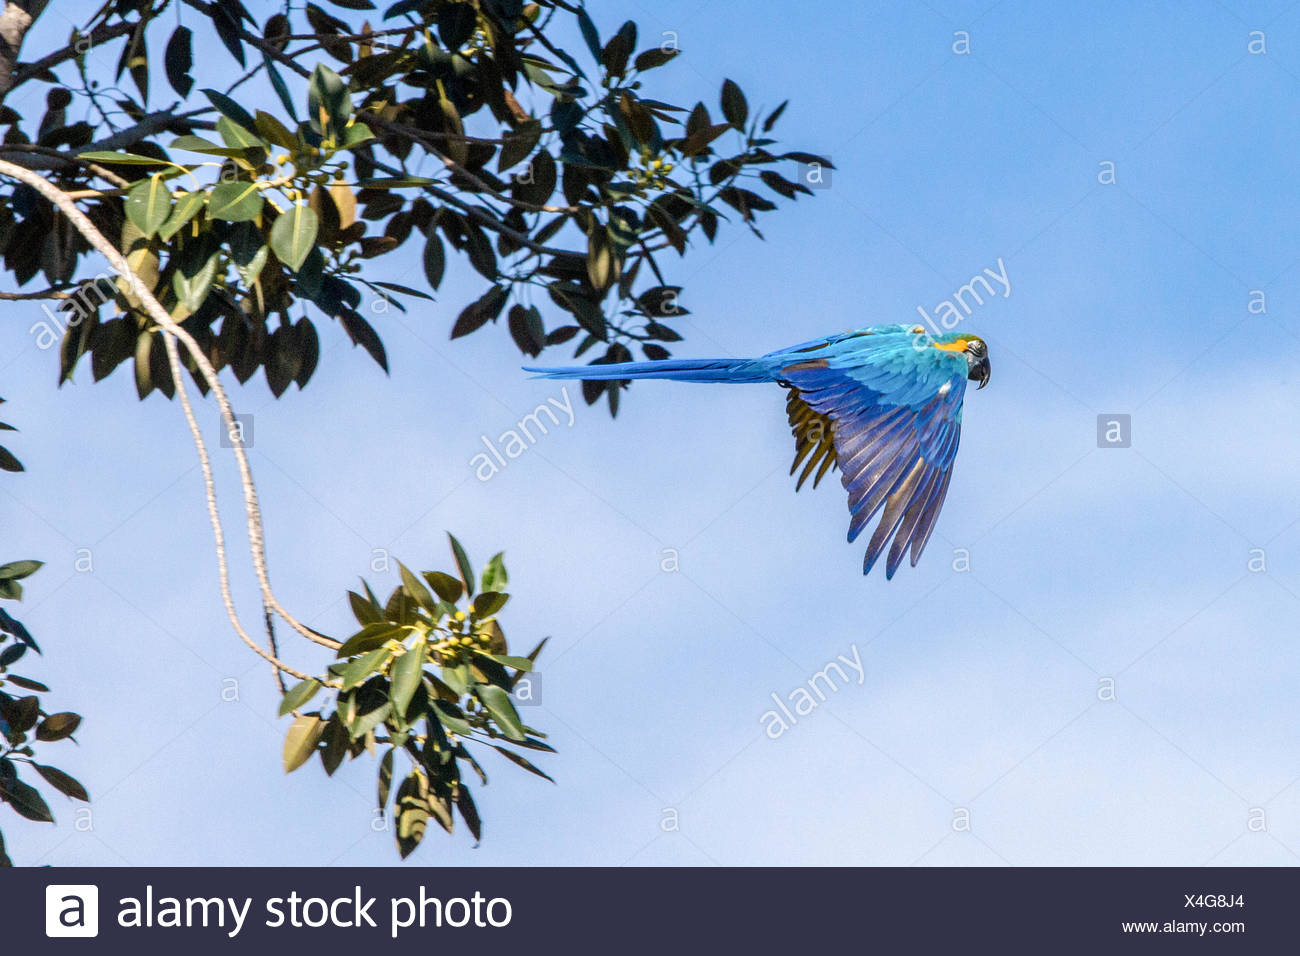 Parrot Flying Blue Sky Stock Photos & Parrot Flying Blue Sky